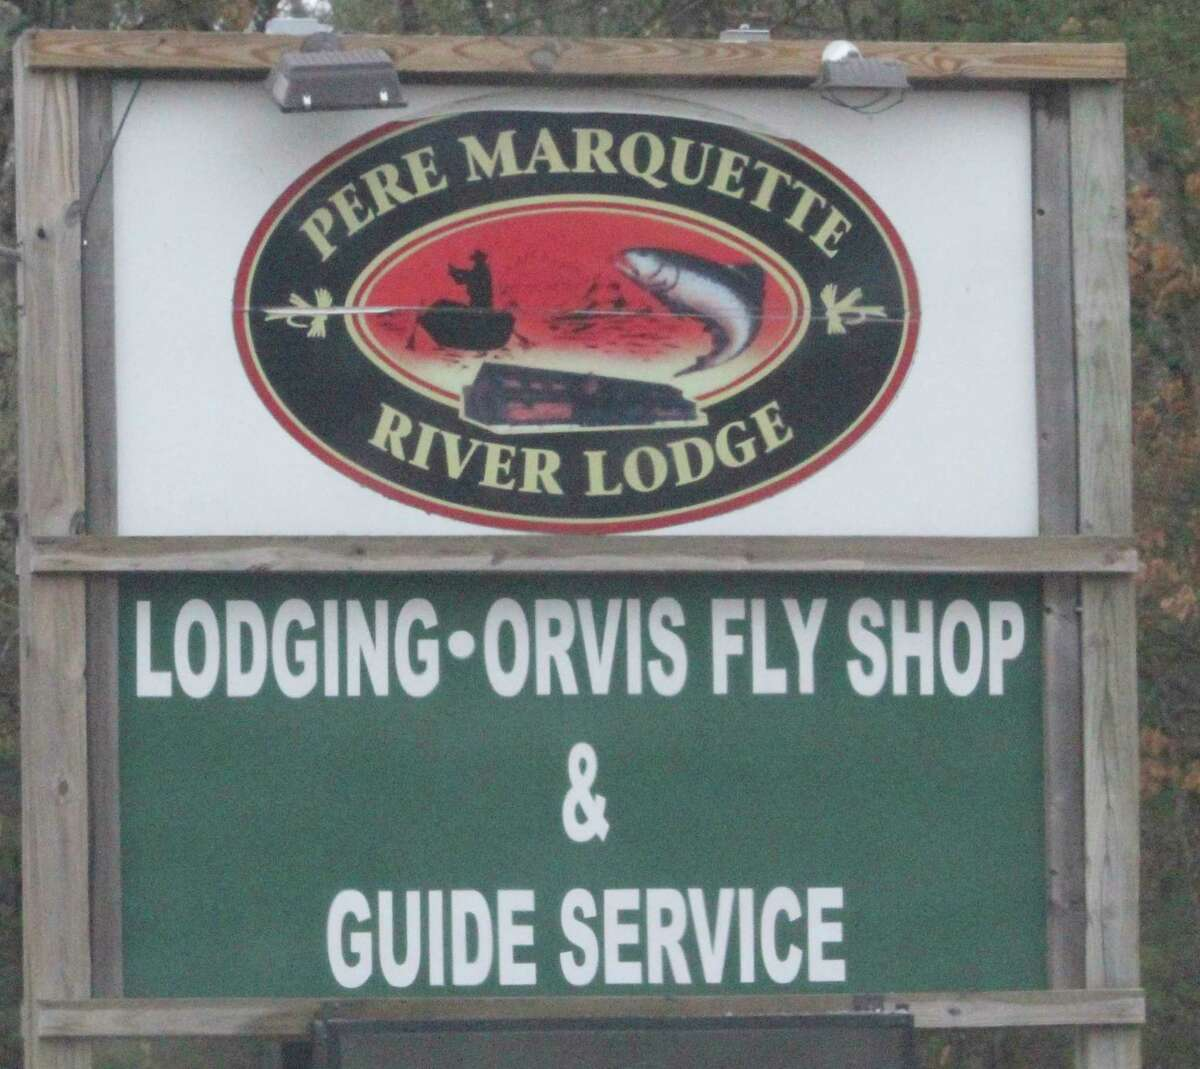 Pere Marquette River Lodge is keeping its guides very active. (Star photo/John Raffel)